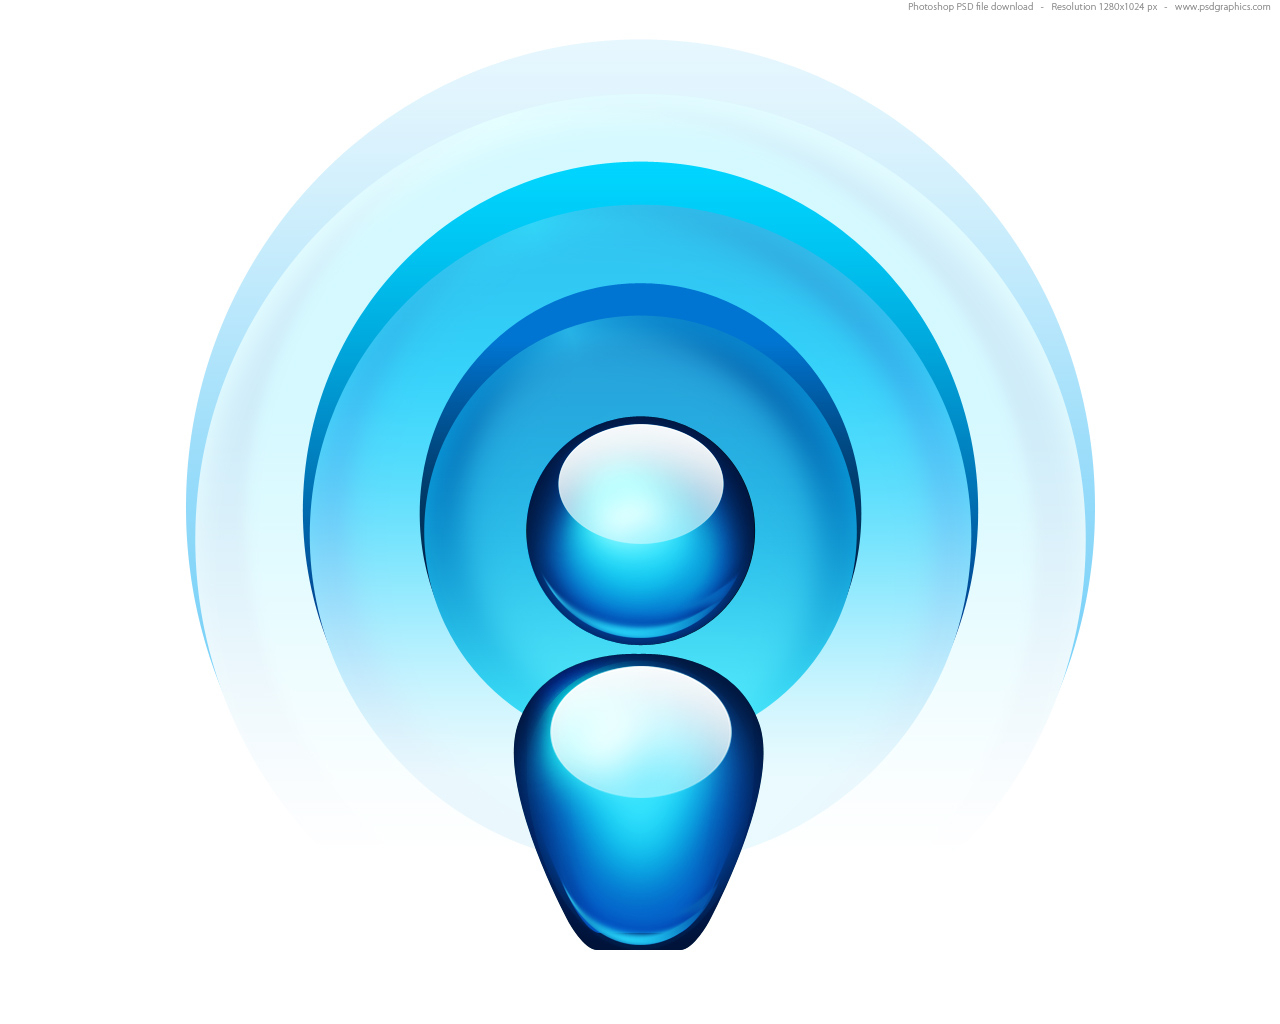 Full size JPG preview: Radio wave icon